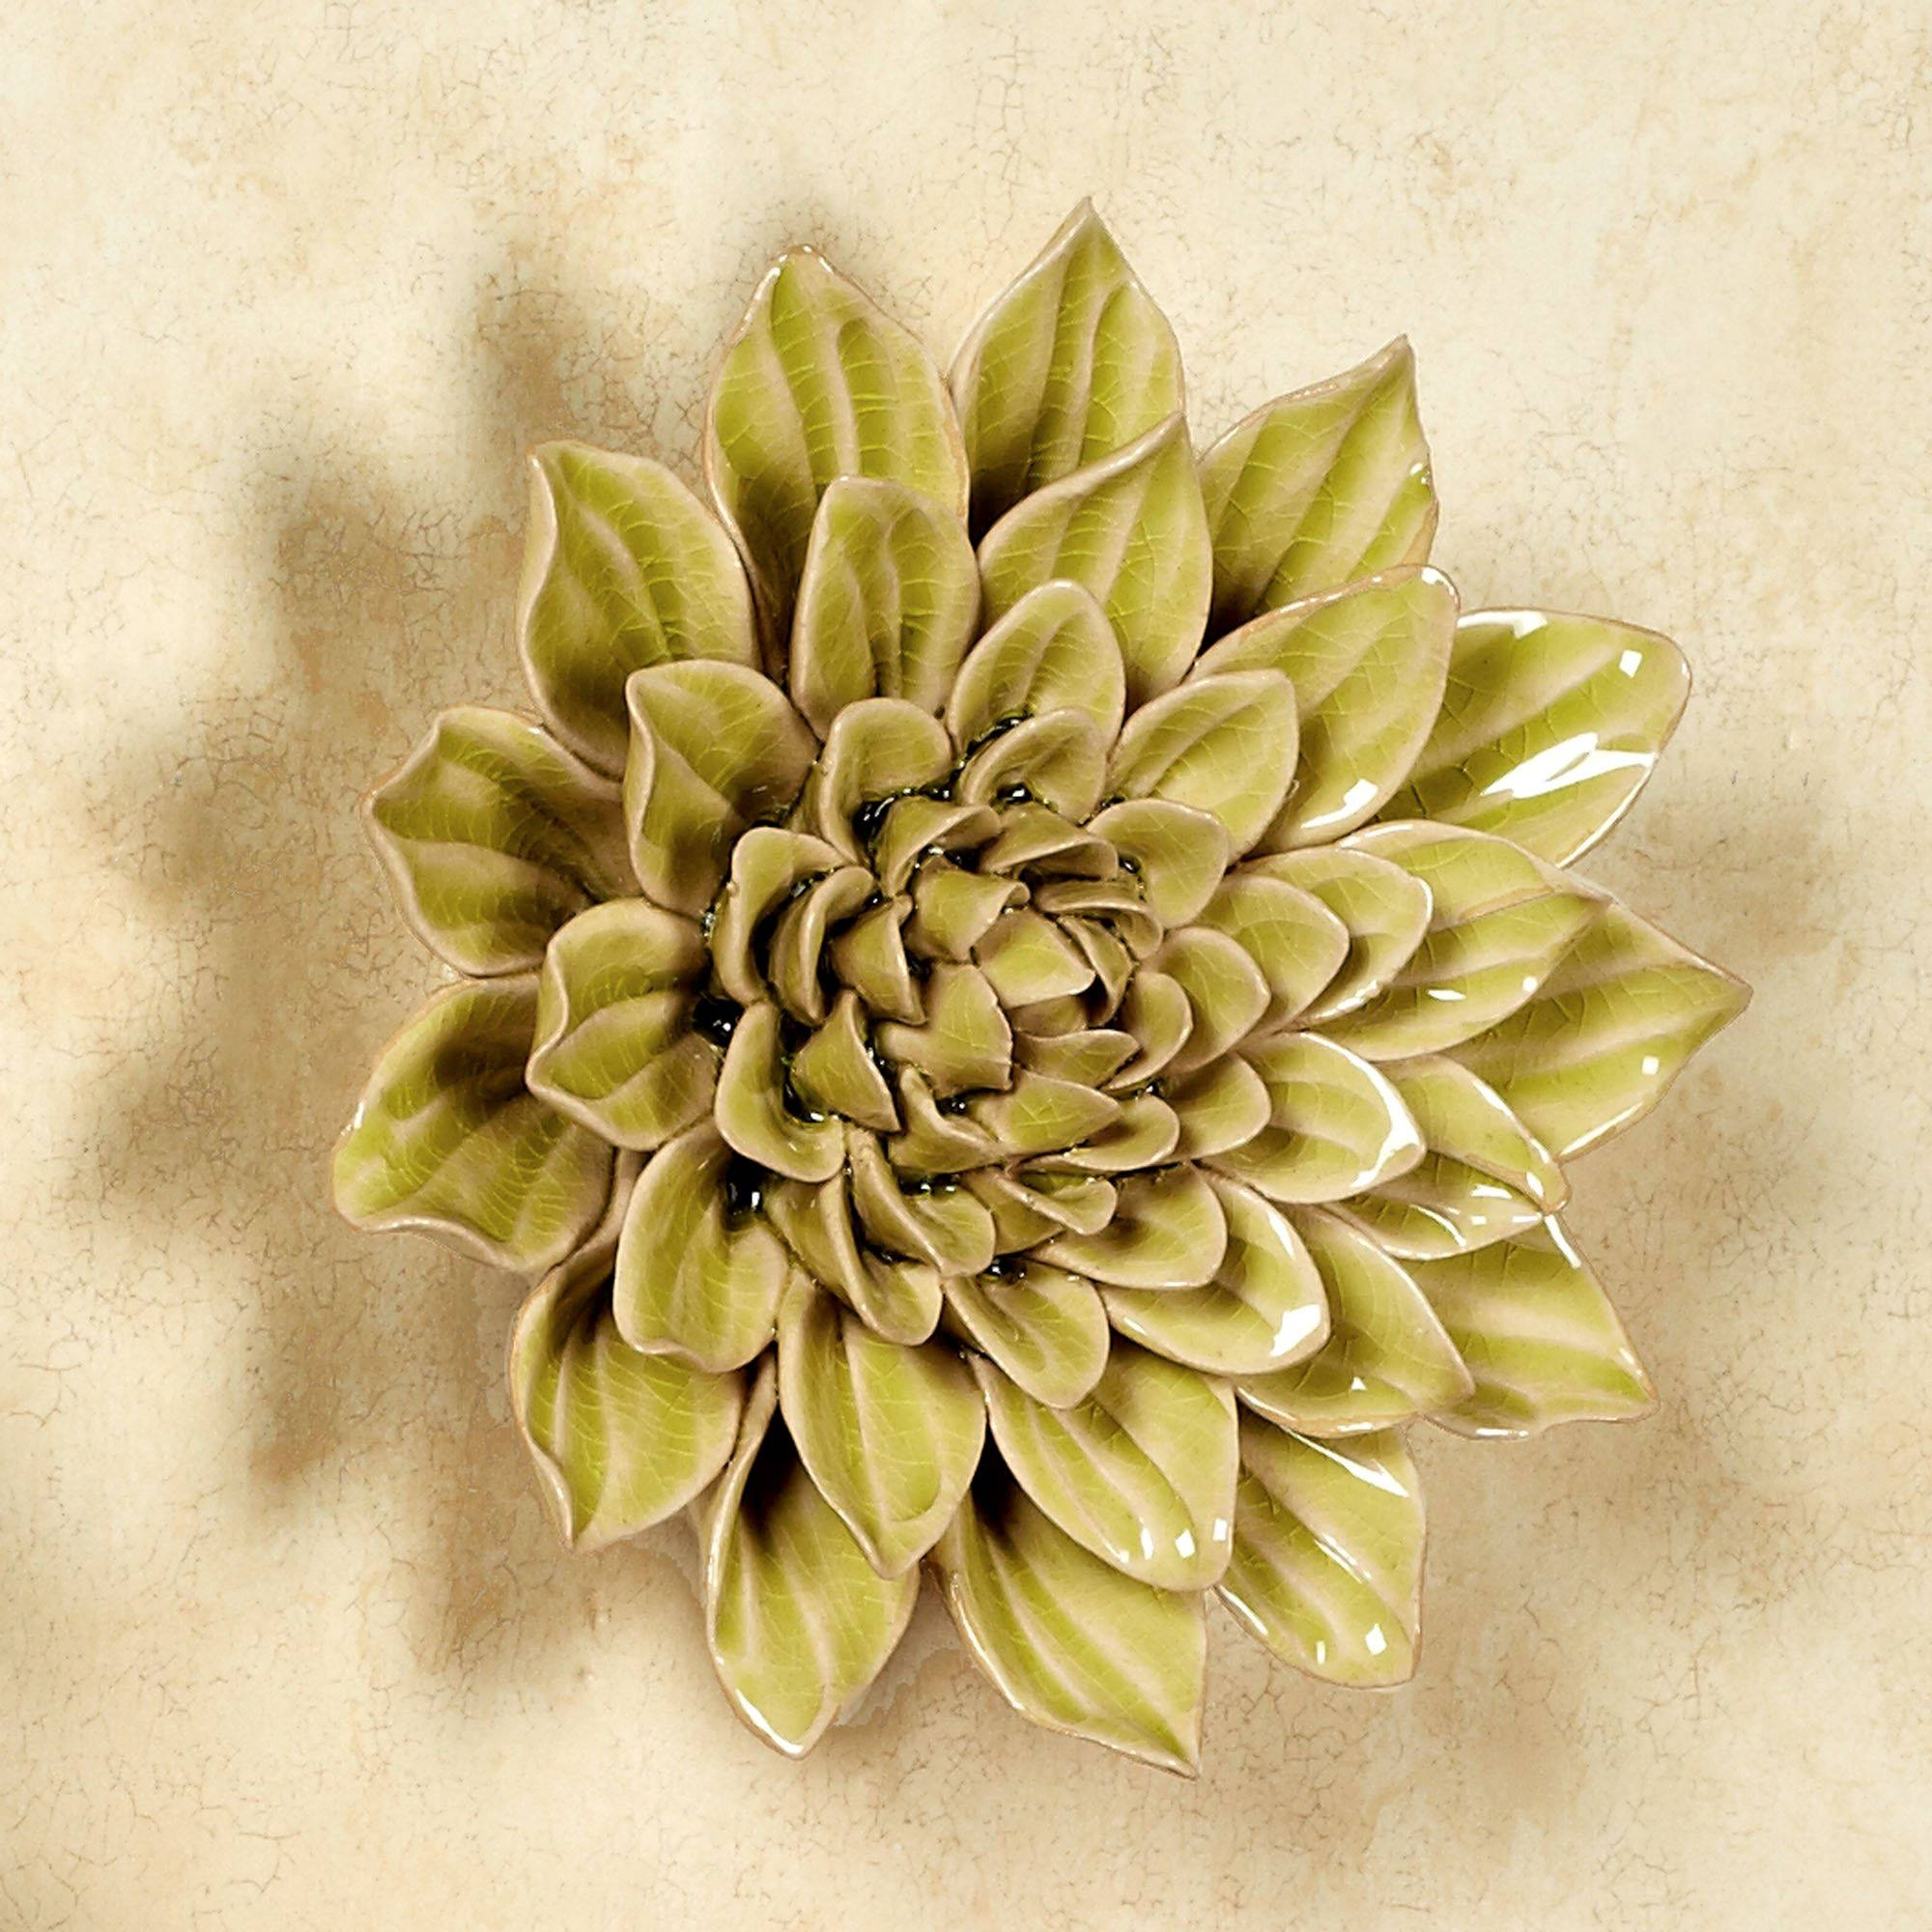 Isabella Ceramic Flower Blossom Wall Art Throughout Recent Italian Ceramic Wall Art (Gallery 1 of 30)